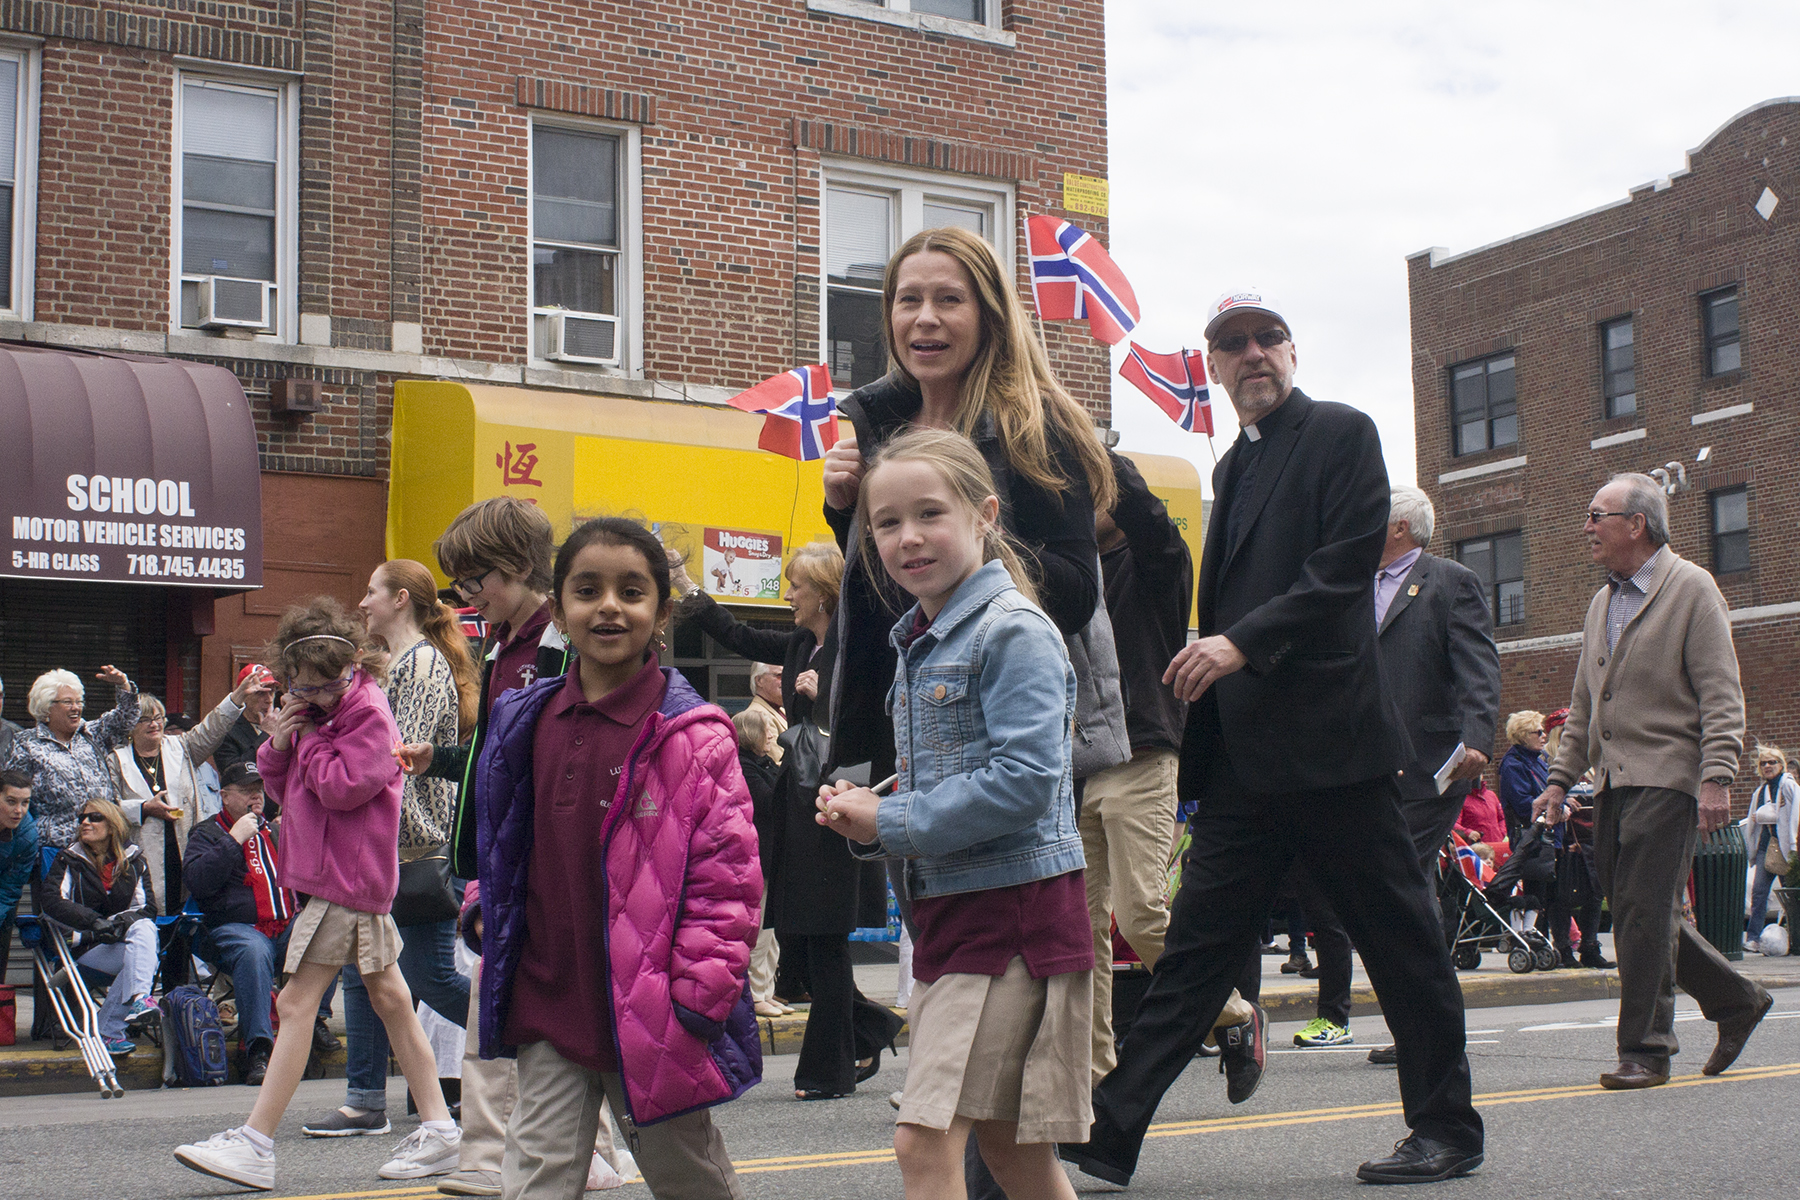 Girl Scouts from the local Bay Ridge troupe march together in the parade.